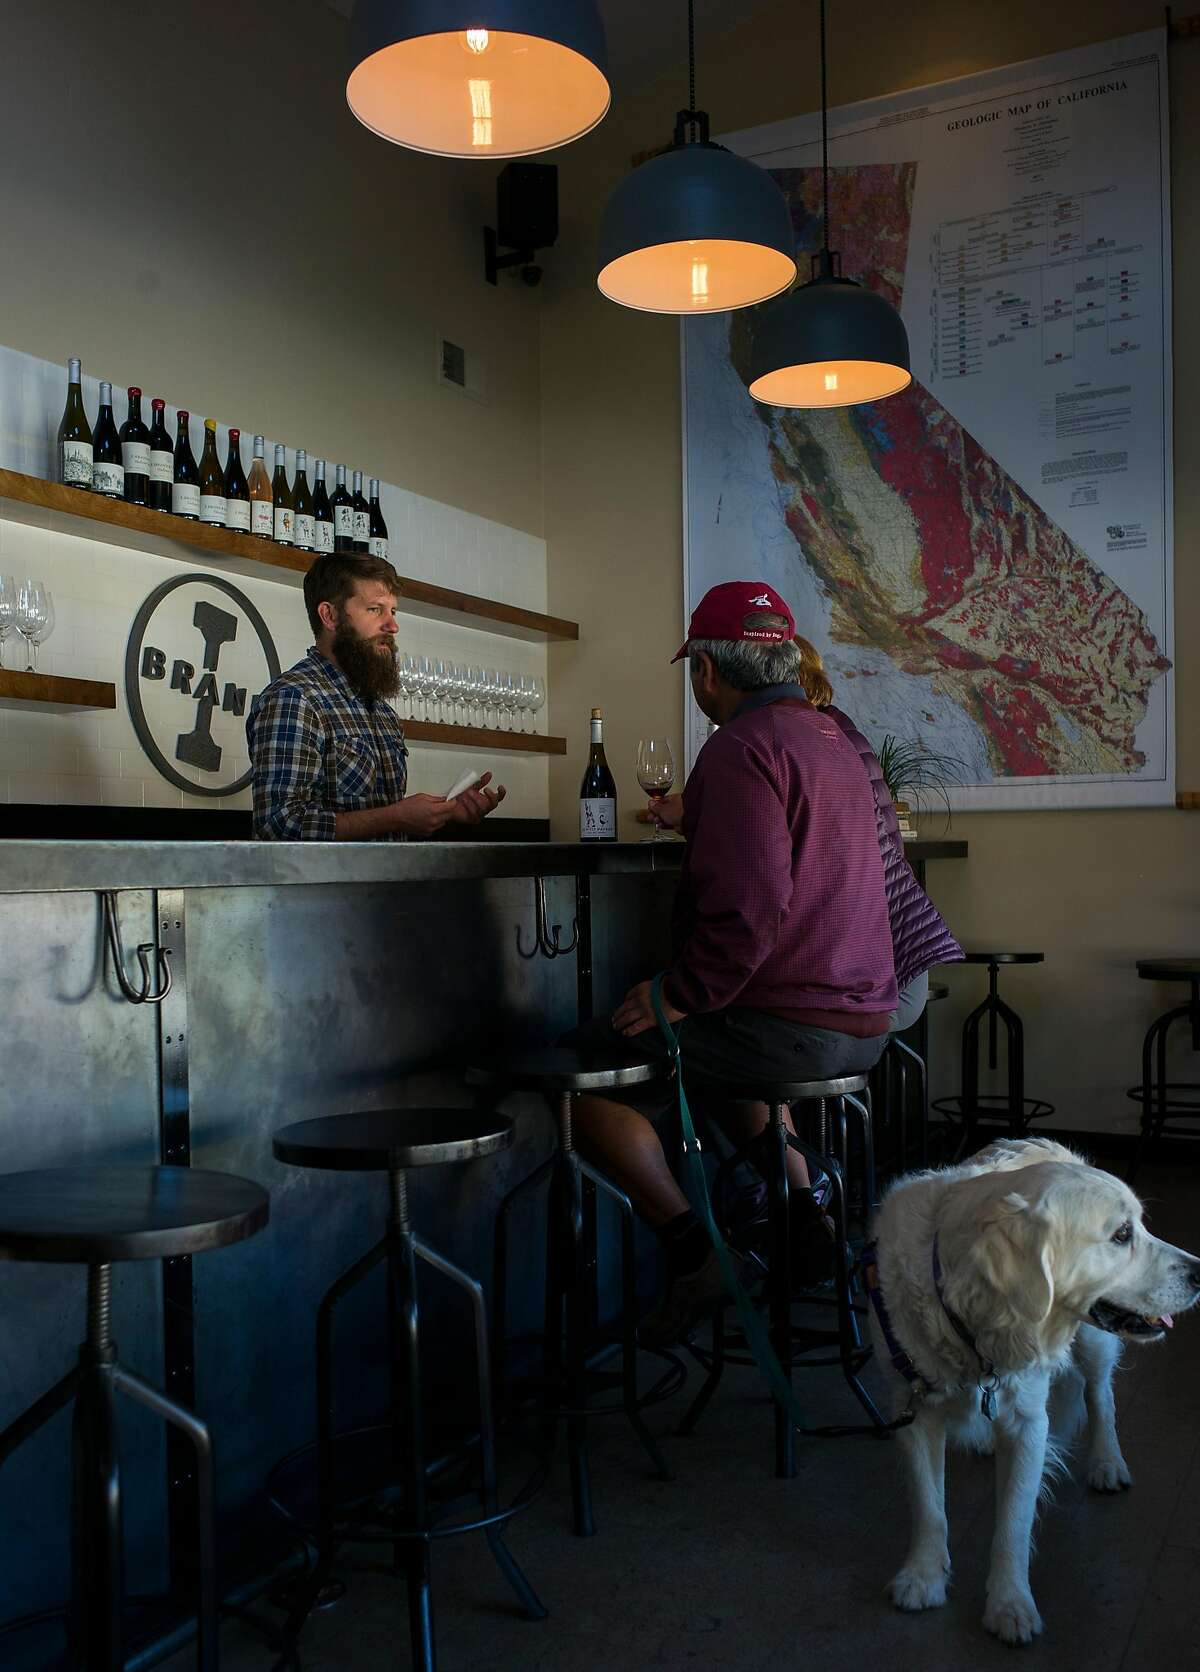 Winemaker Ian Brand (left) talks with customers at the I. Brand and Family tasting room in Carmel Valley, Calif.